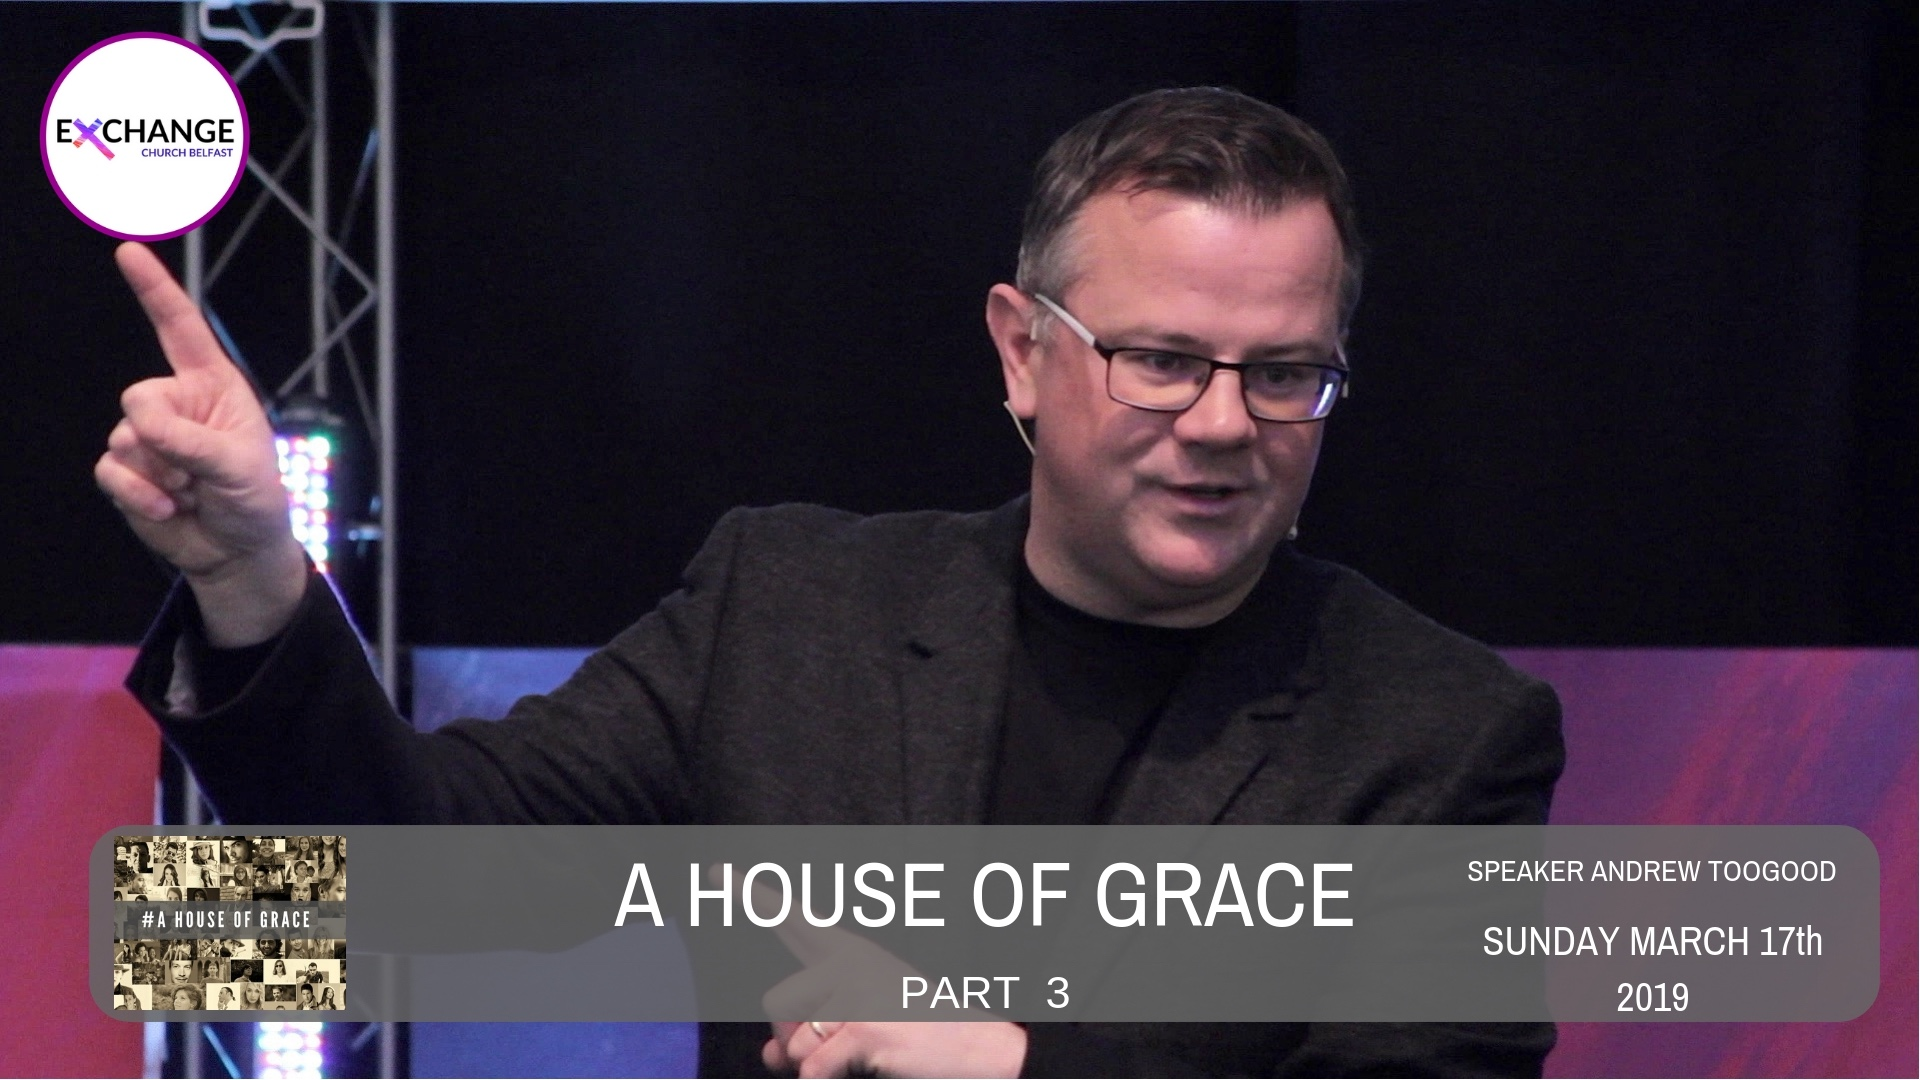 A House of Grace - Part 3 - What's pushing you in?